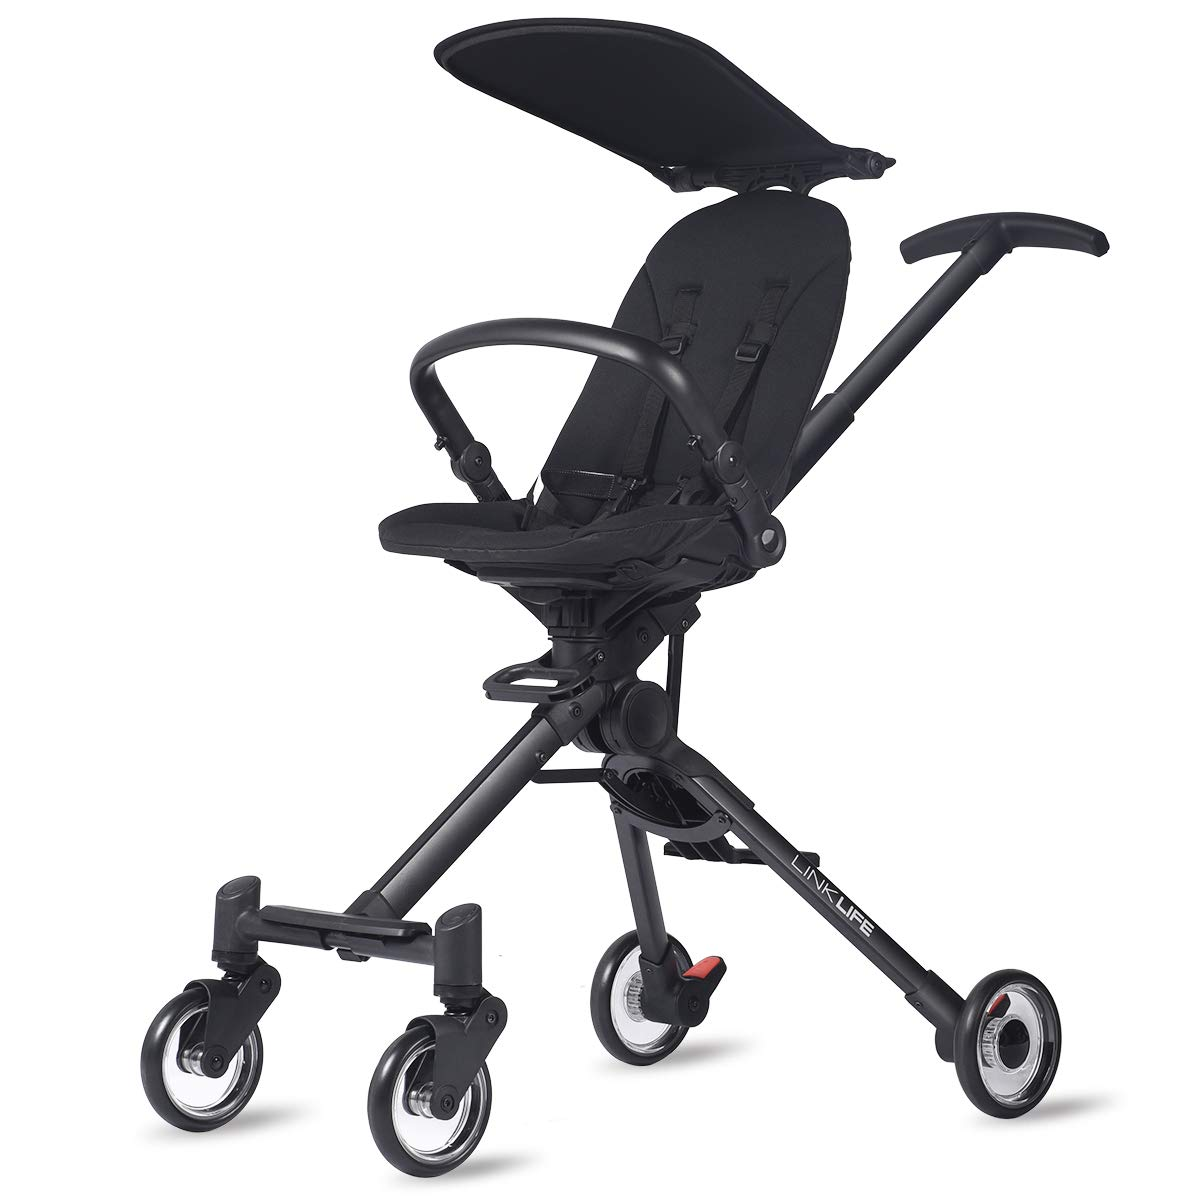 Parker Baby Lightweight Stroller Rider,High Landscape Infant Stroller,Reversible Seat Pram,One Hand,Easy Fold,Adjustable Handle Bar,Suspension Wheels,Safety,Stability,Fashionable